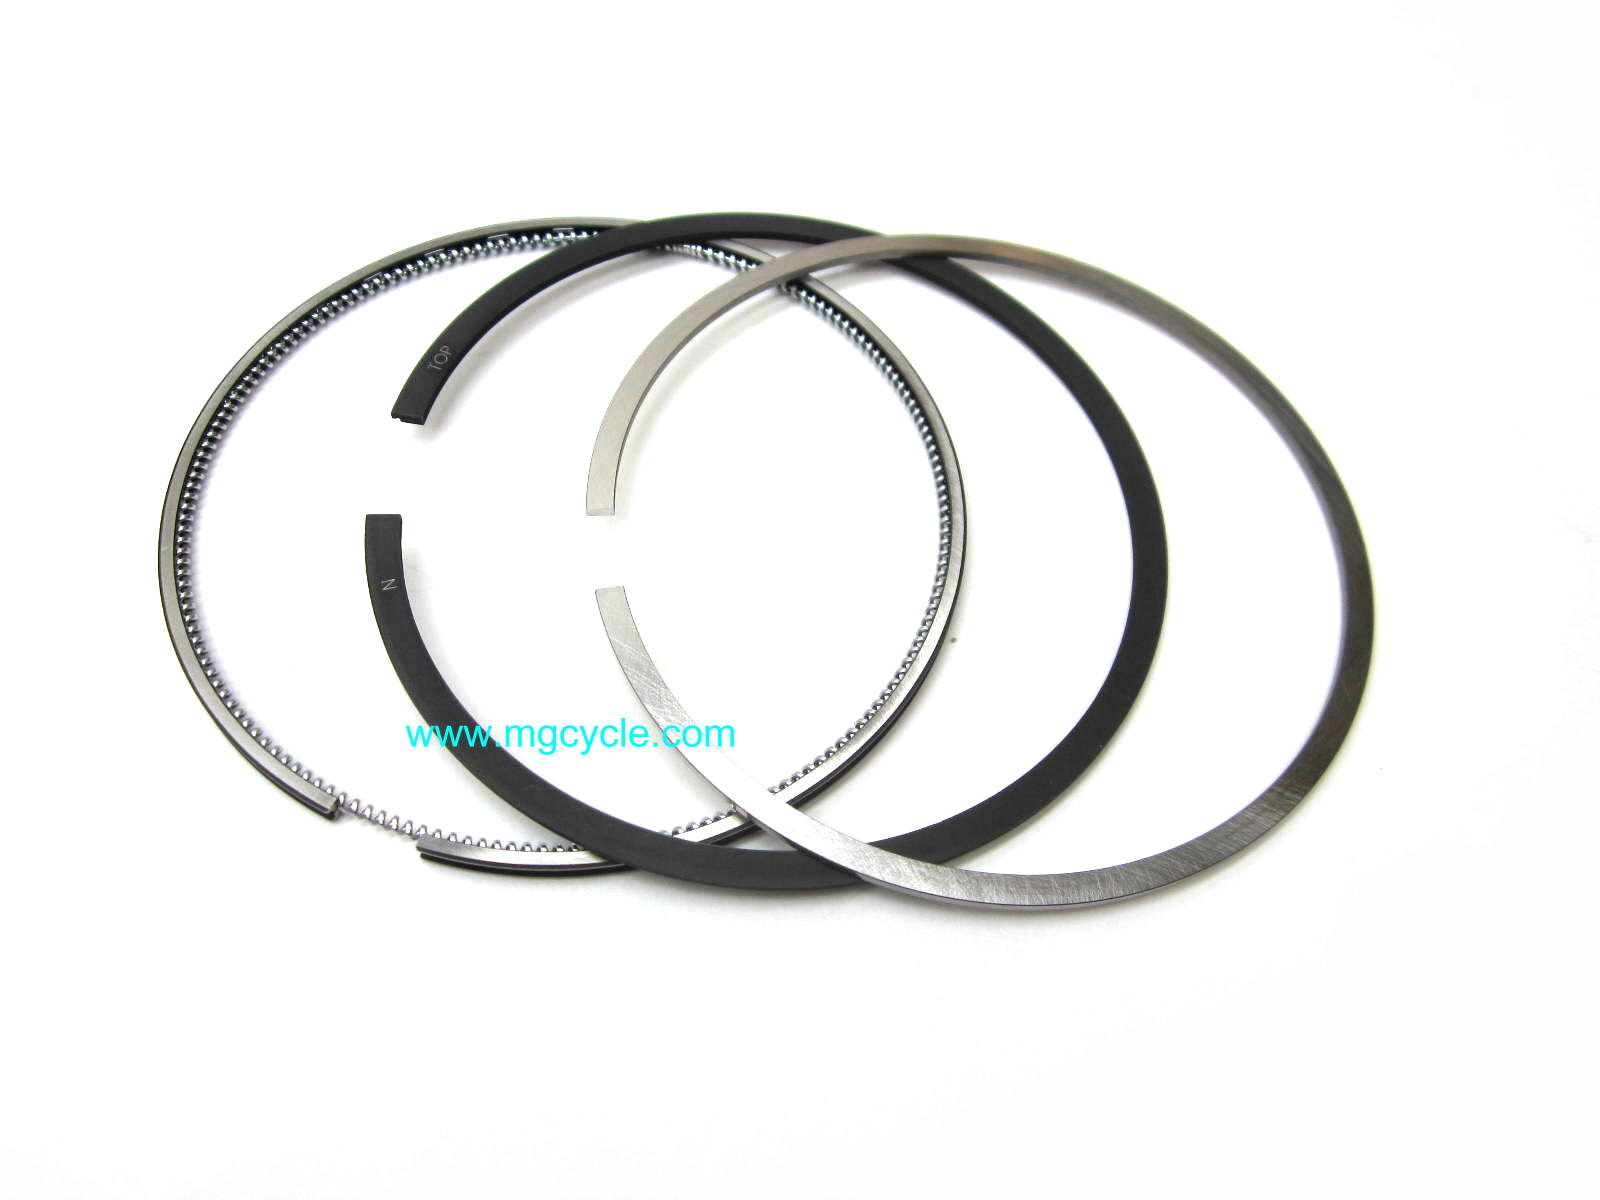 piston ring set, all 1100cc models 1994 through 2005, one piston